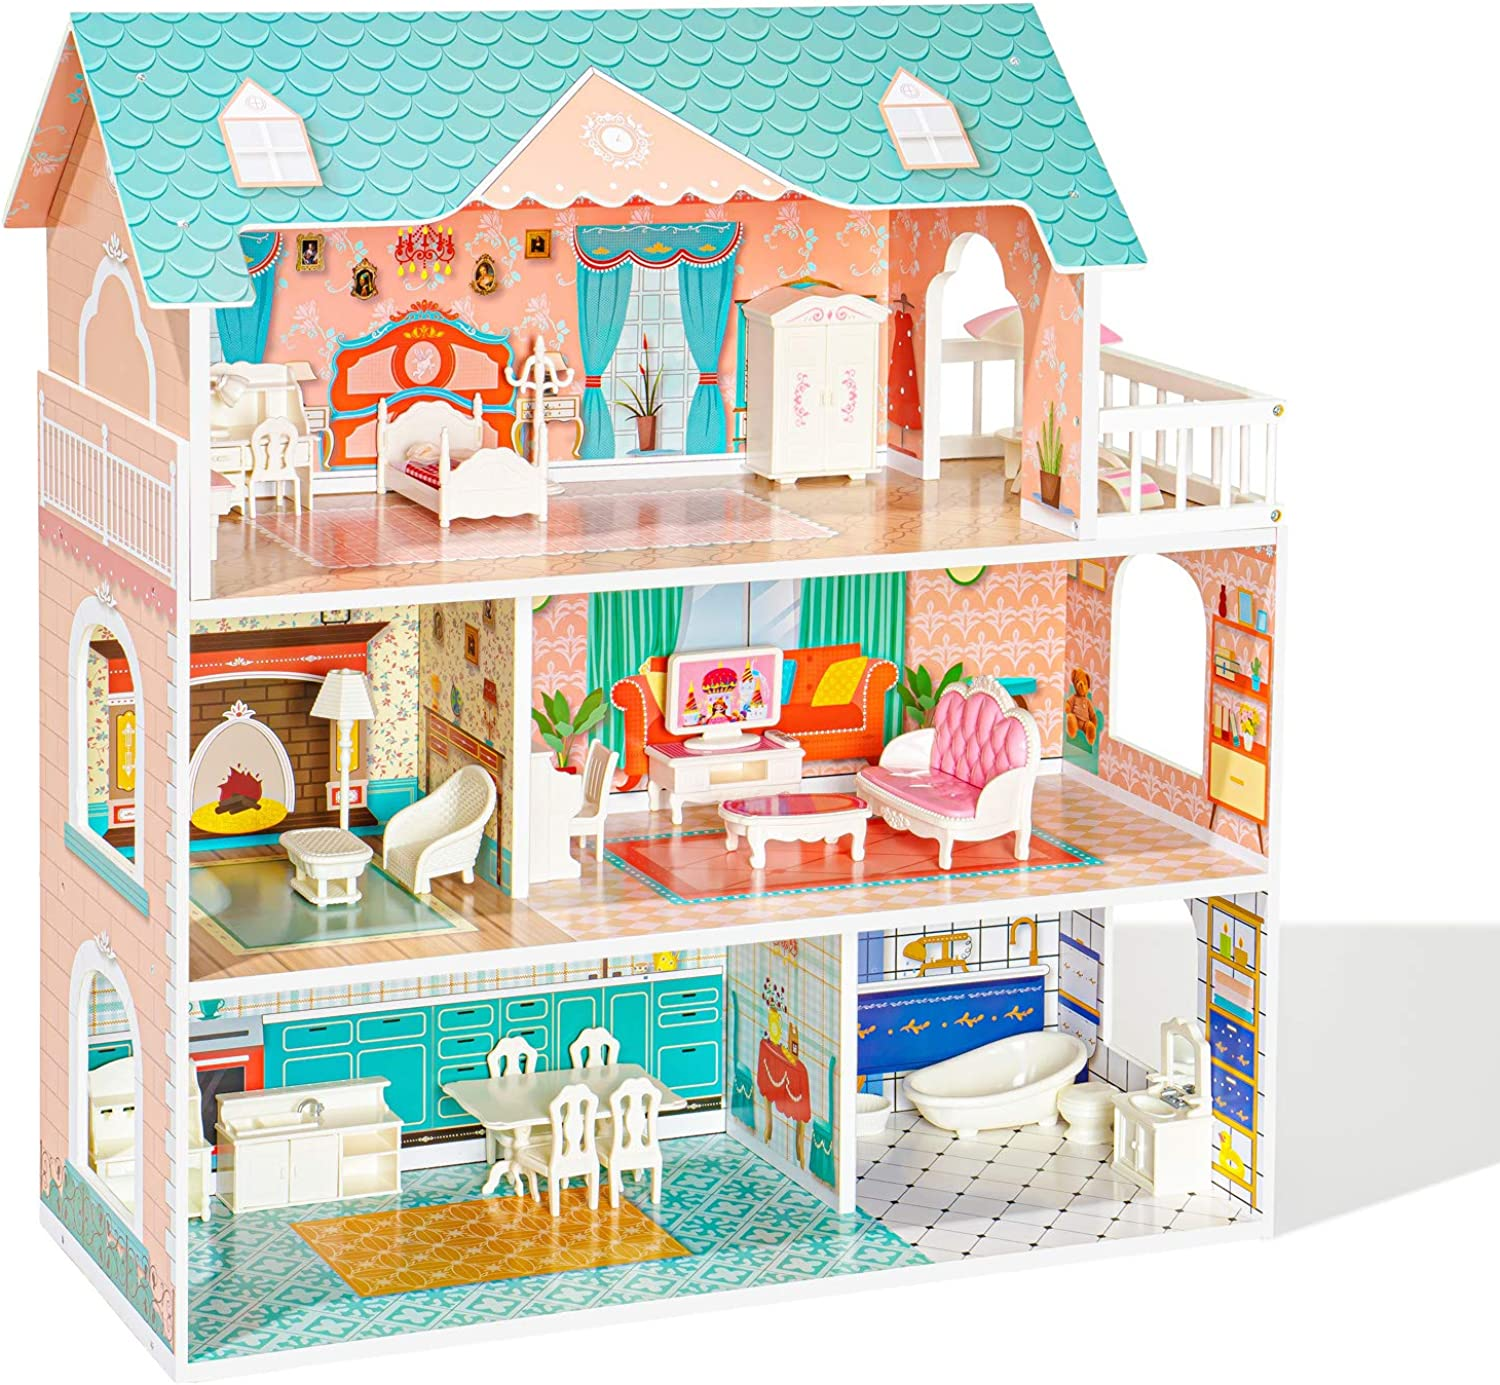 ROBUD Wooden Dollhouse for Kids Girls, Toy Gift for 3 4 5 6 Years Old, with Furniture Blue